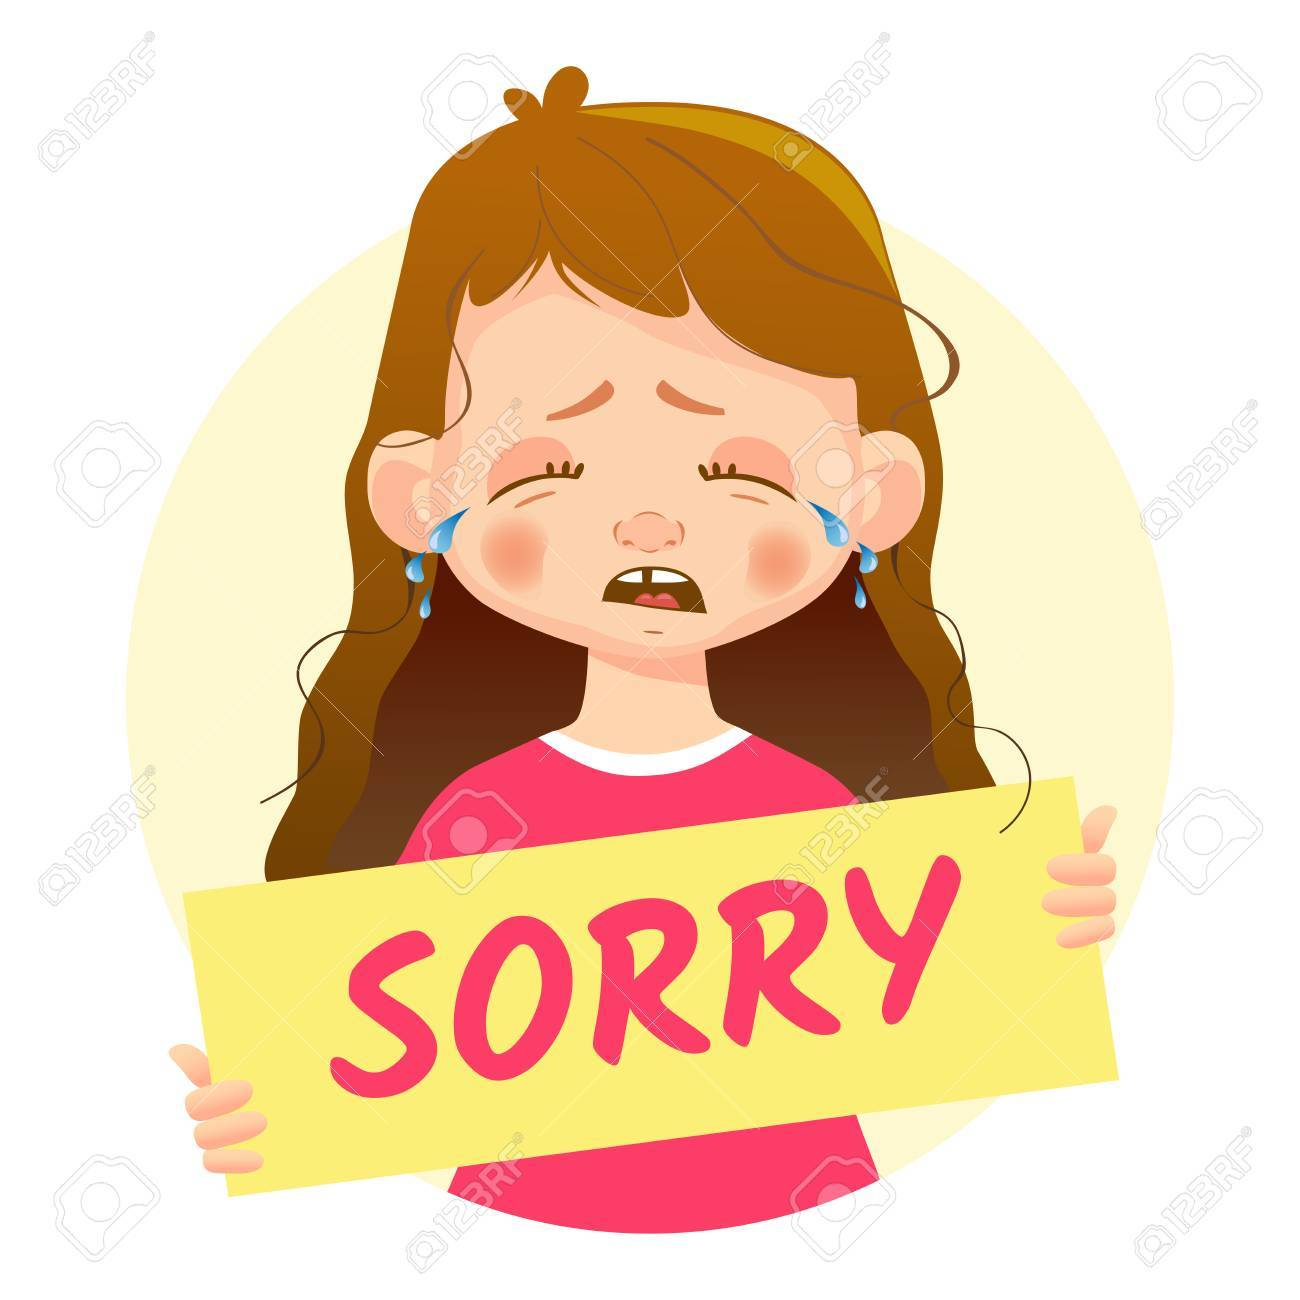 example of resignation letter%0A I am sorry message girl holding sorry poster royalty free i am sorry  message girl holding